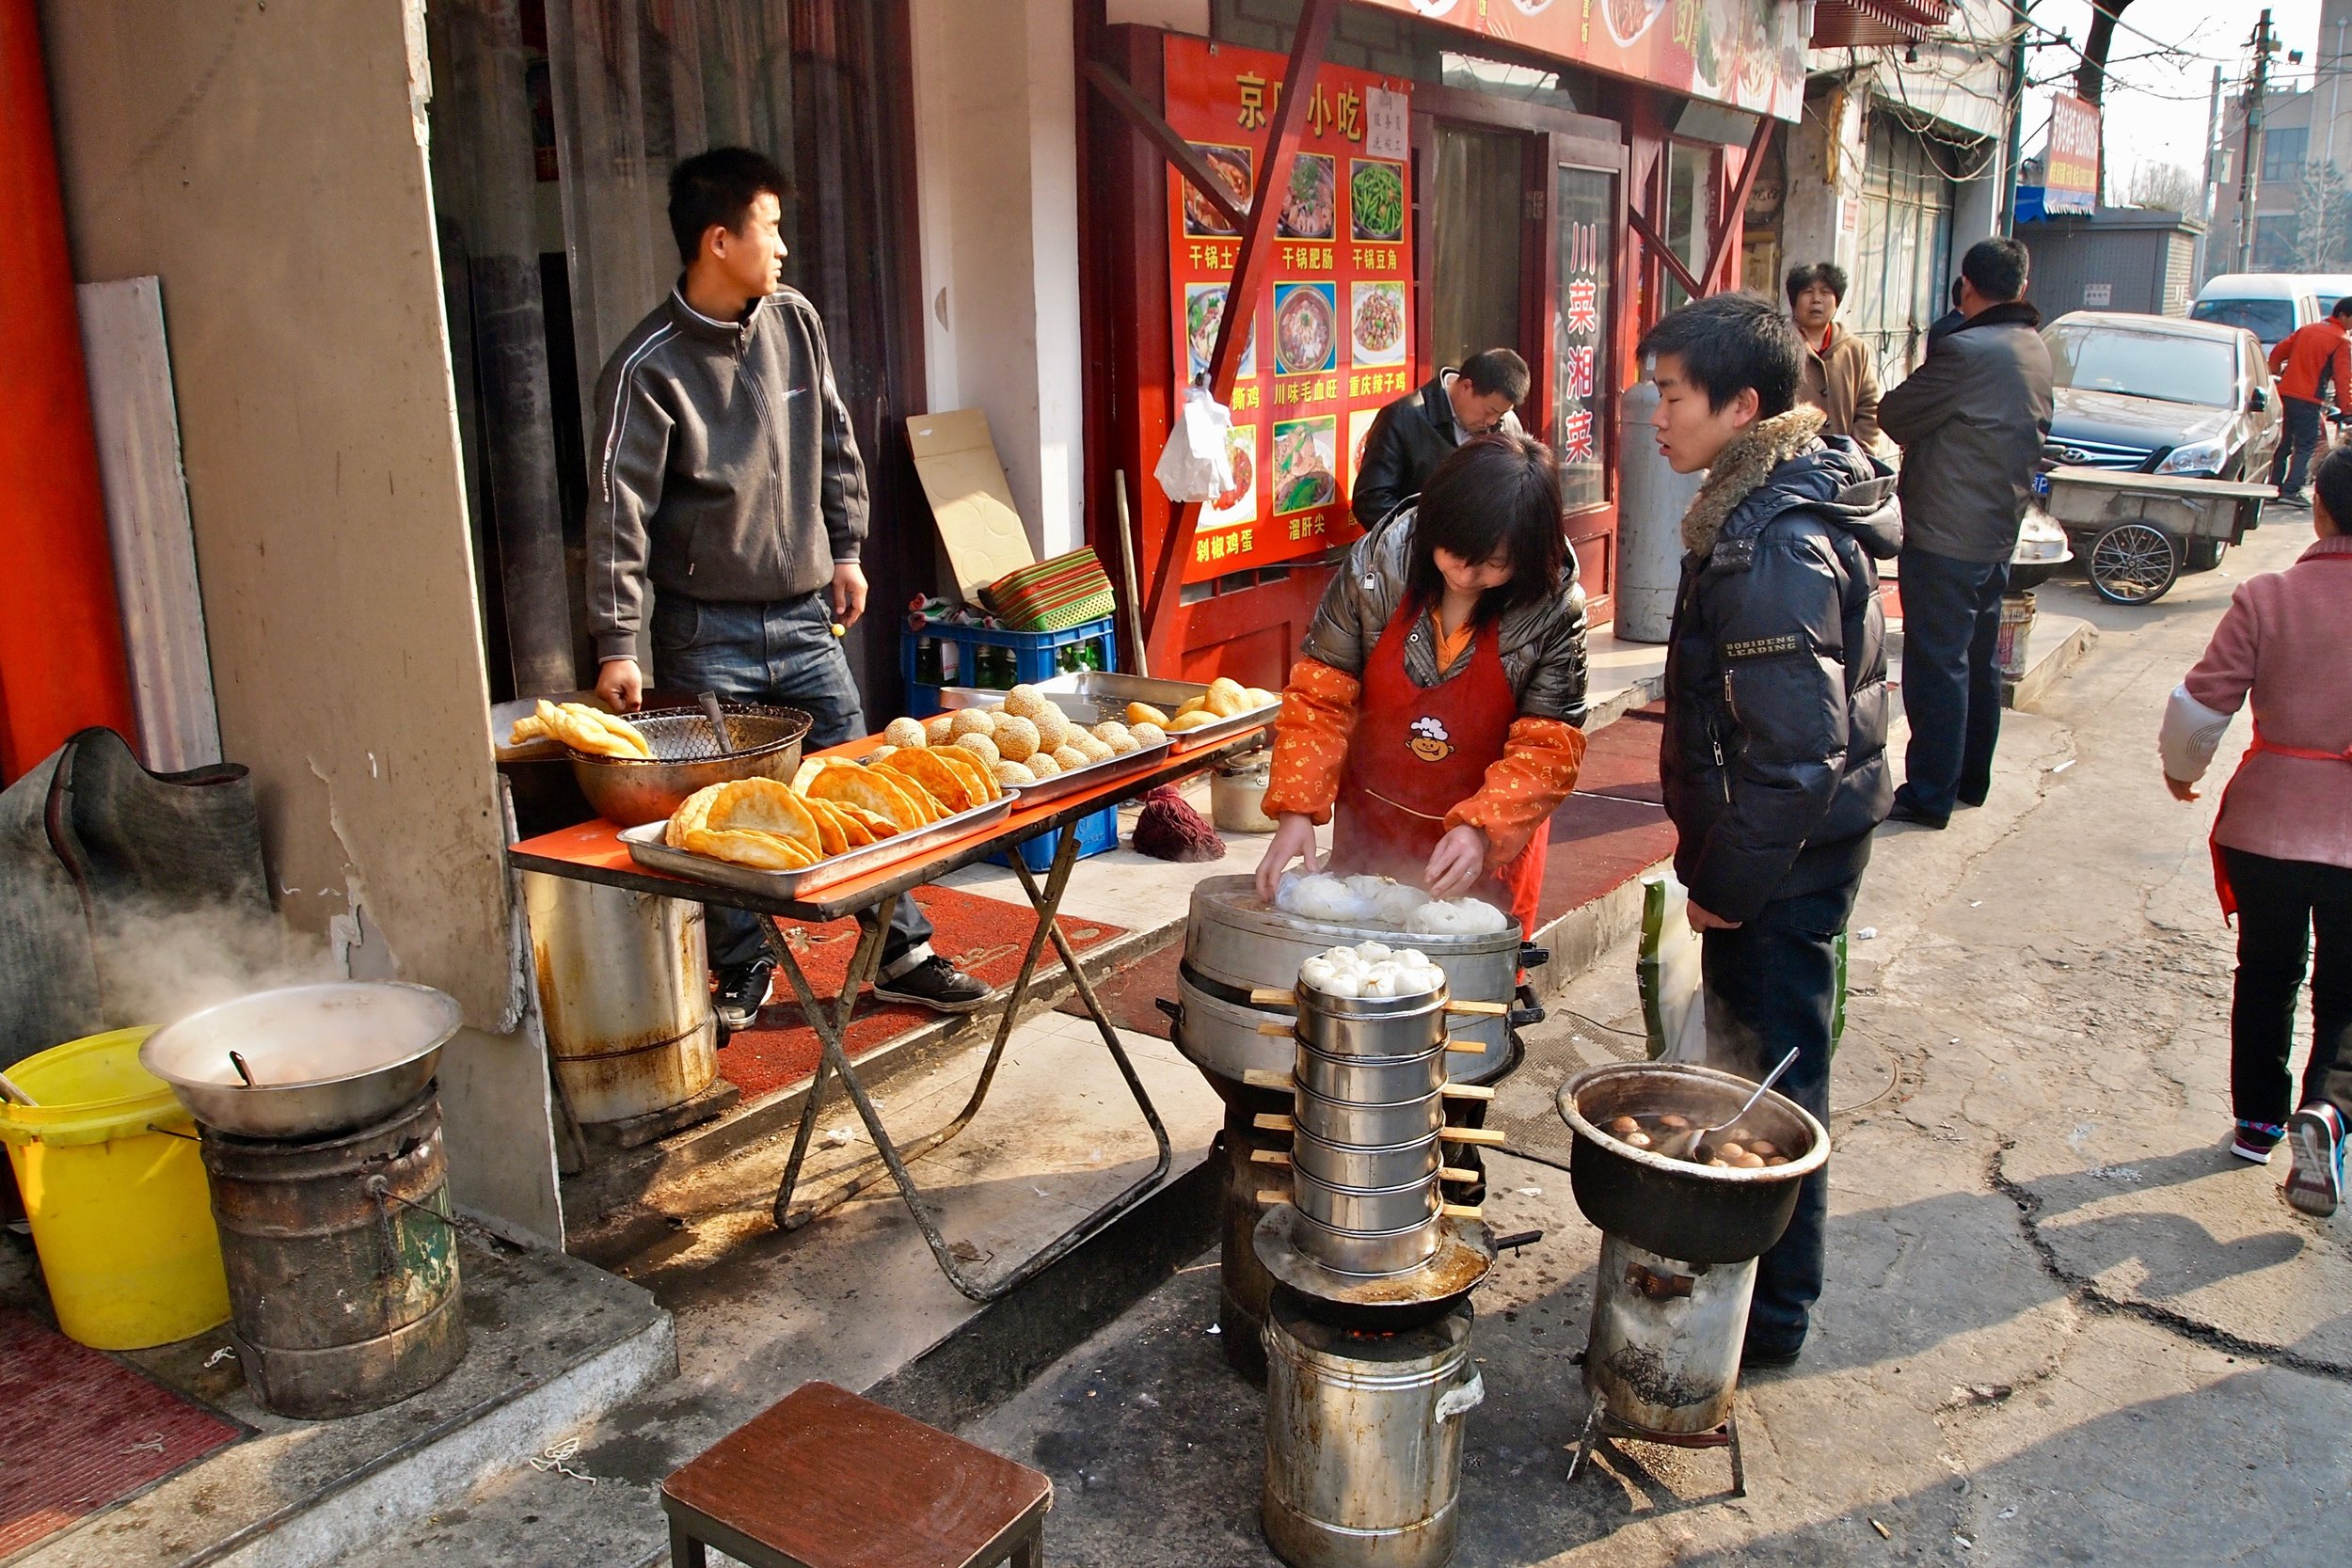 Food stand in an alley behind Tiananmen Square, Beijing, China. (C) Remko Tanis